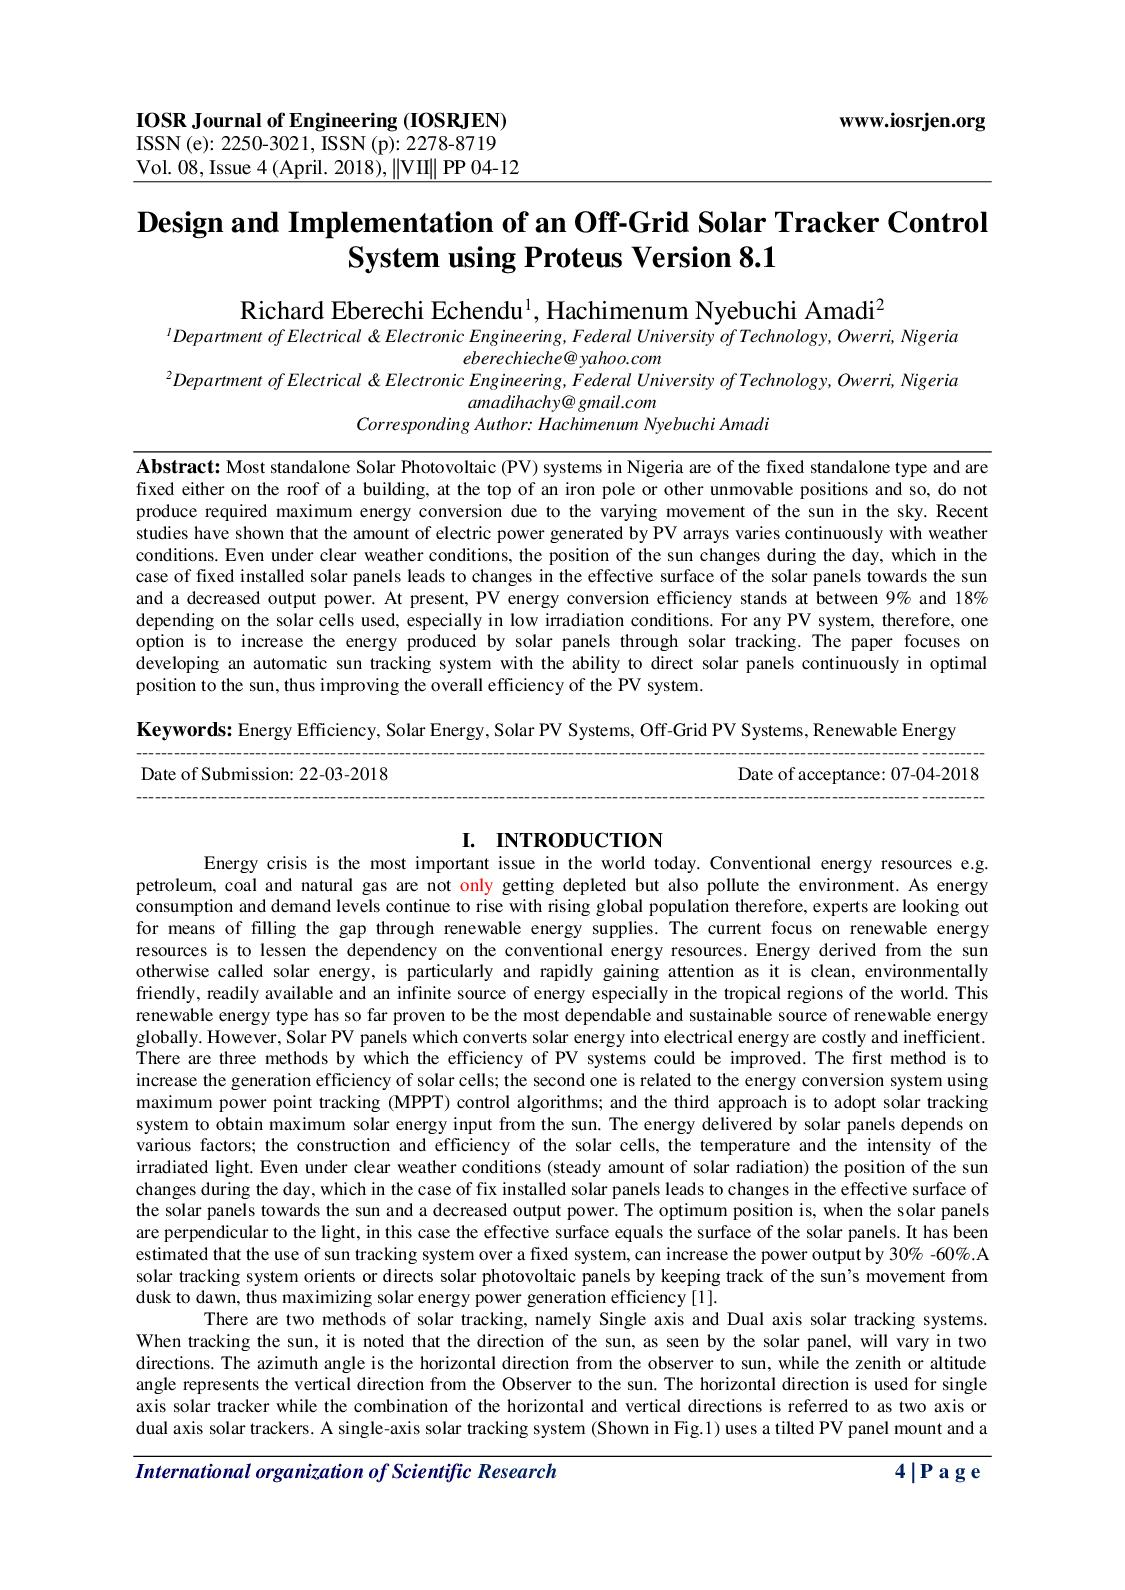 Calameo Design And Implementation Of An Off Grid Solar Tracker Control System Using Proteus 8 1